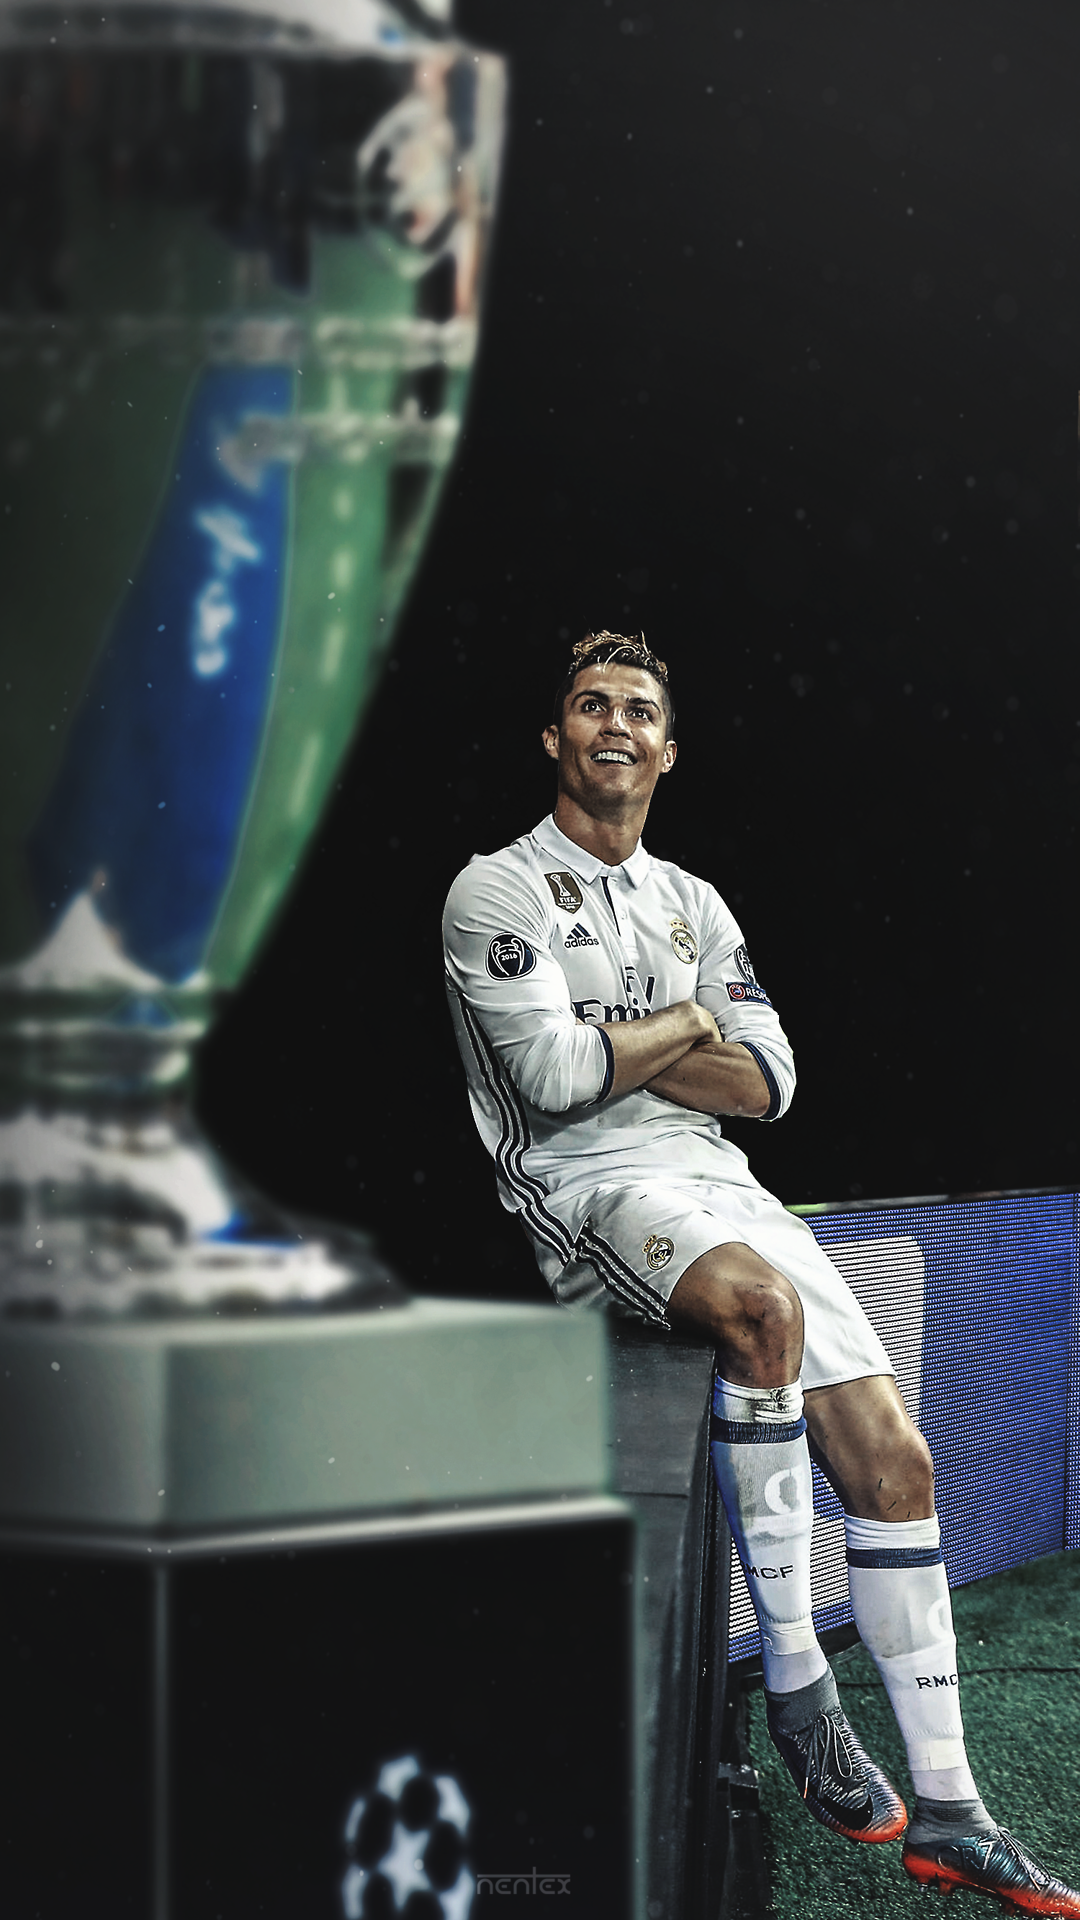 Visit Champions League Real Madrid Hd Wallpaper Android On High Definition Wallpaper At Rai In 2020 Ronaldo Real Madrid Cristiano Ronaldo Wallpapers Ronaldo Wallpapers